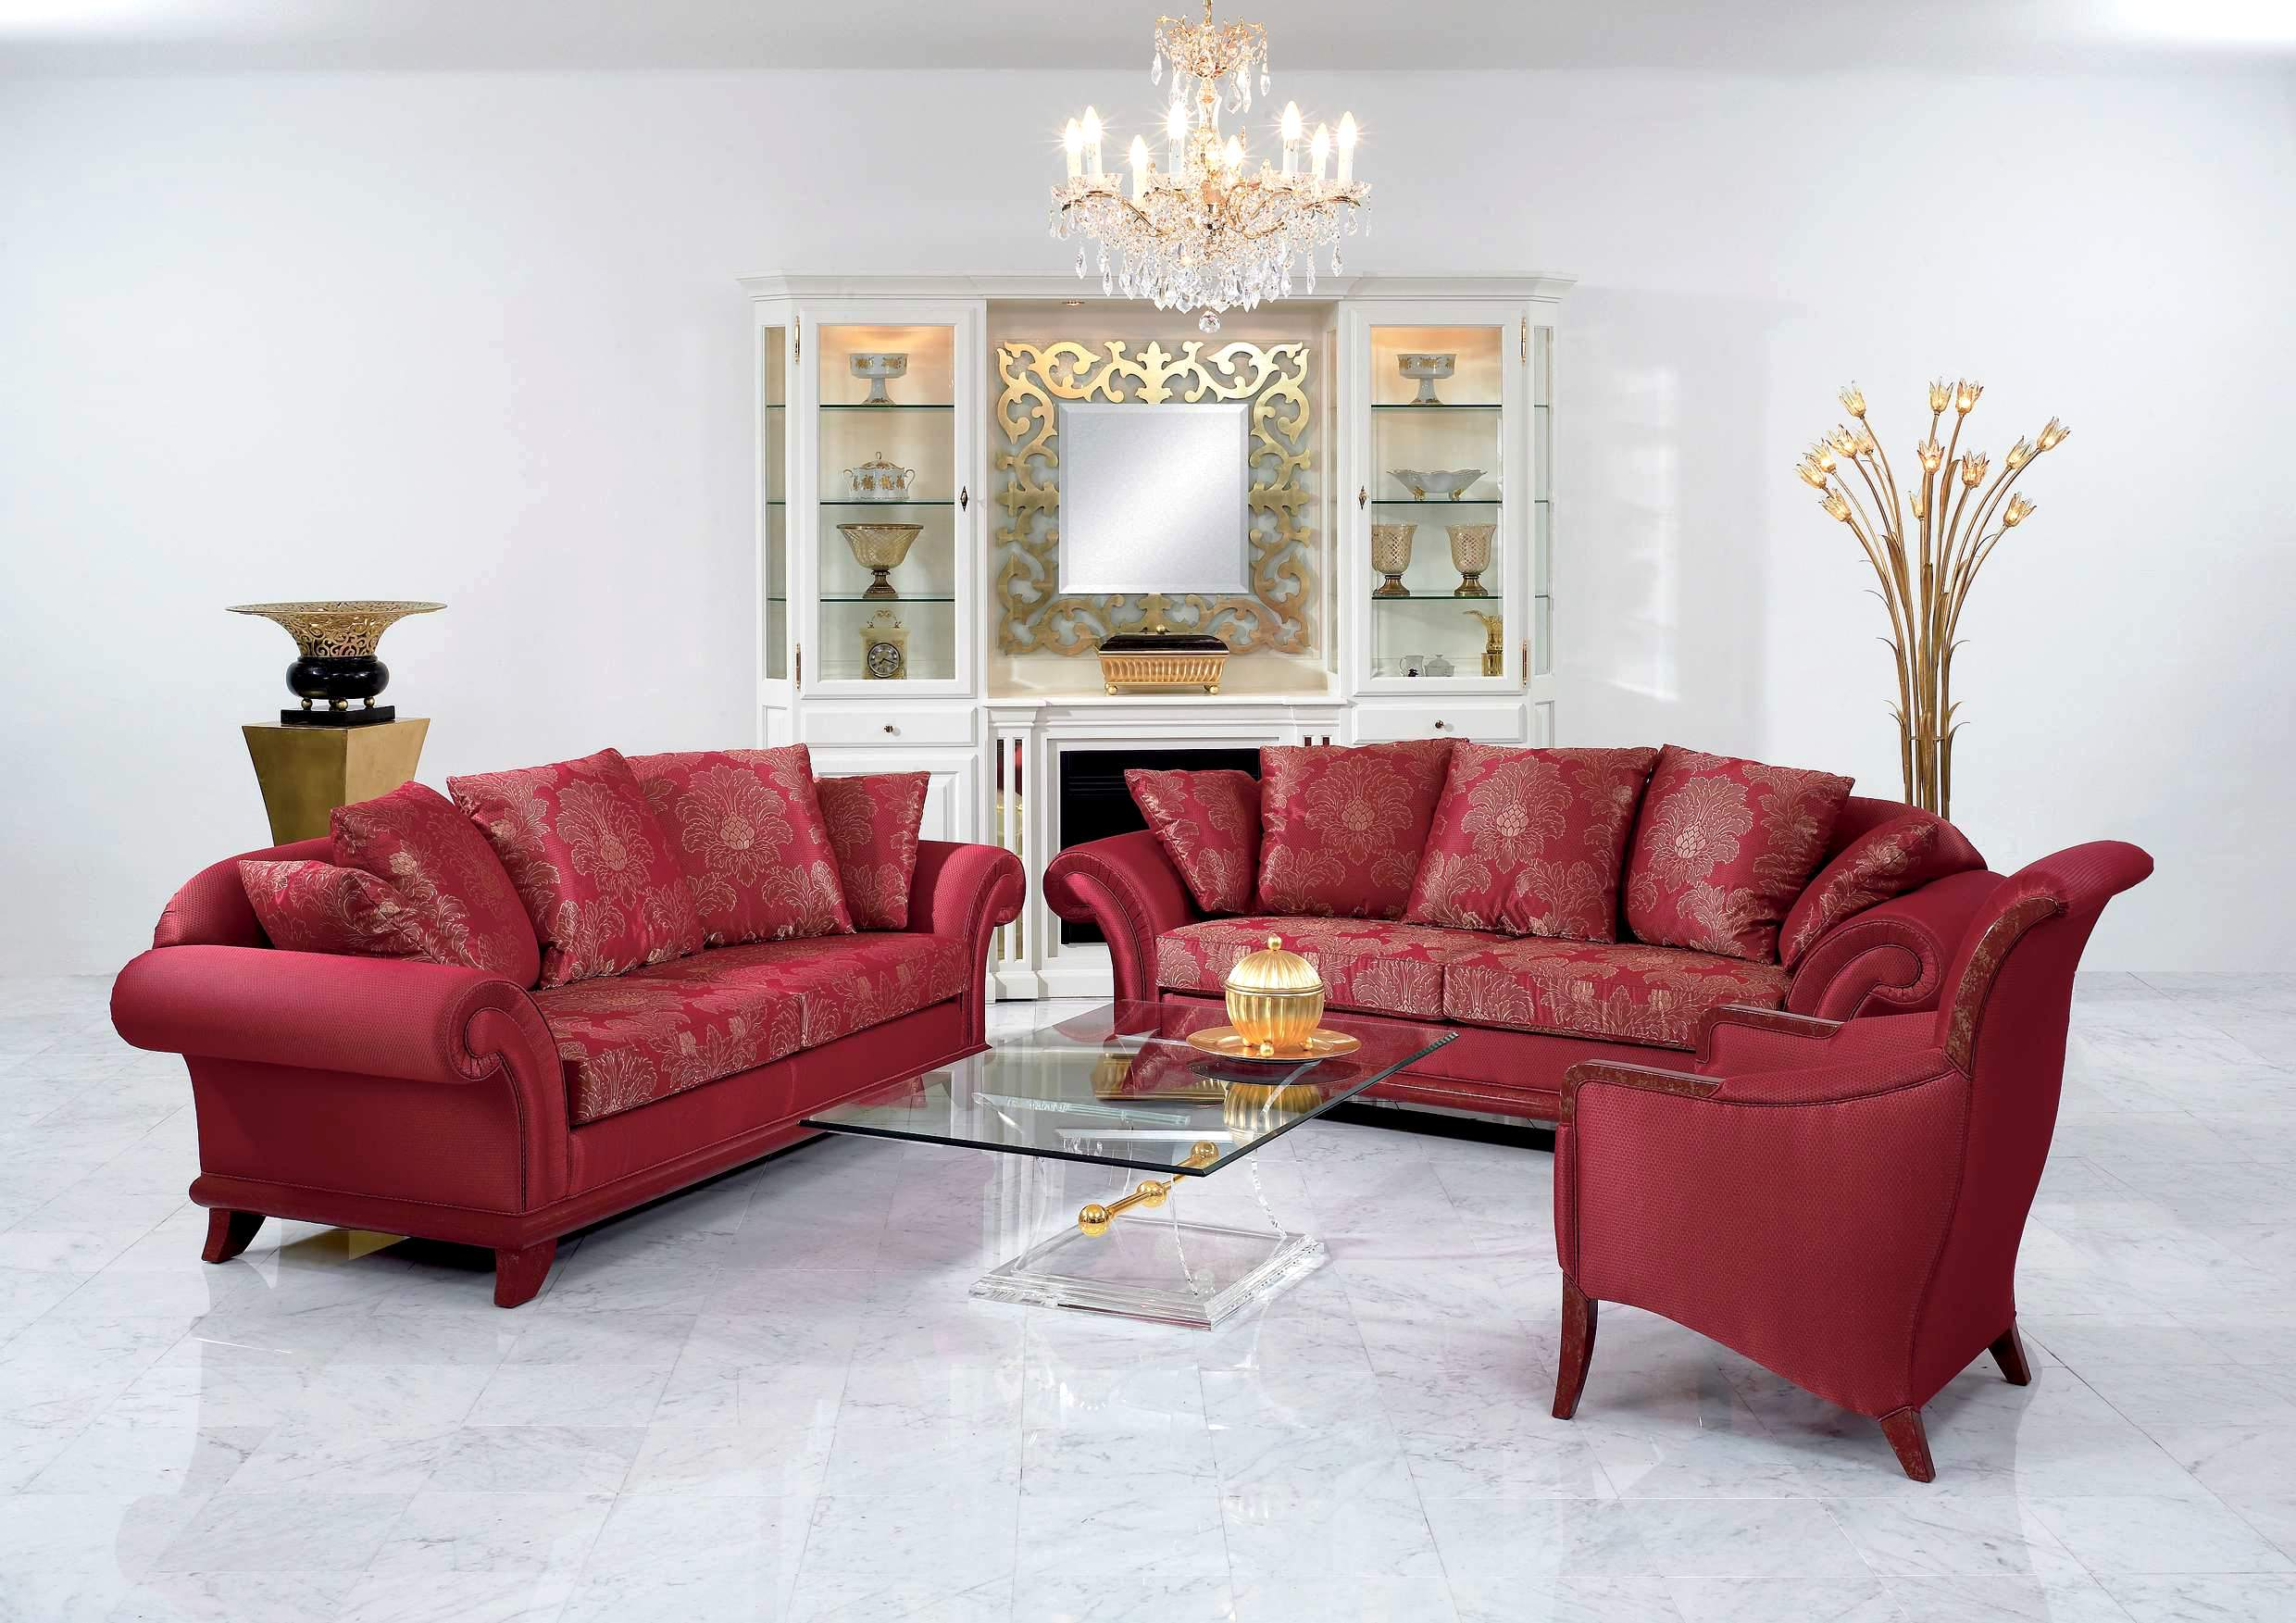 D cor tips to plan your living room my decorative Interior decoration for living room